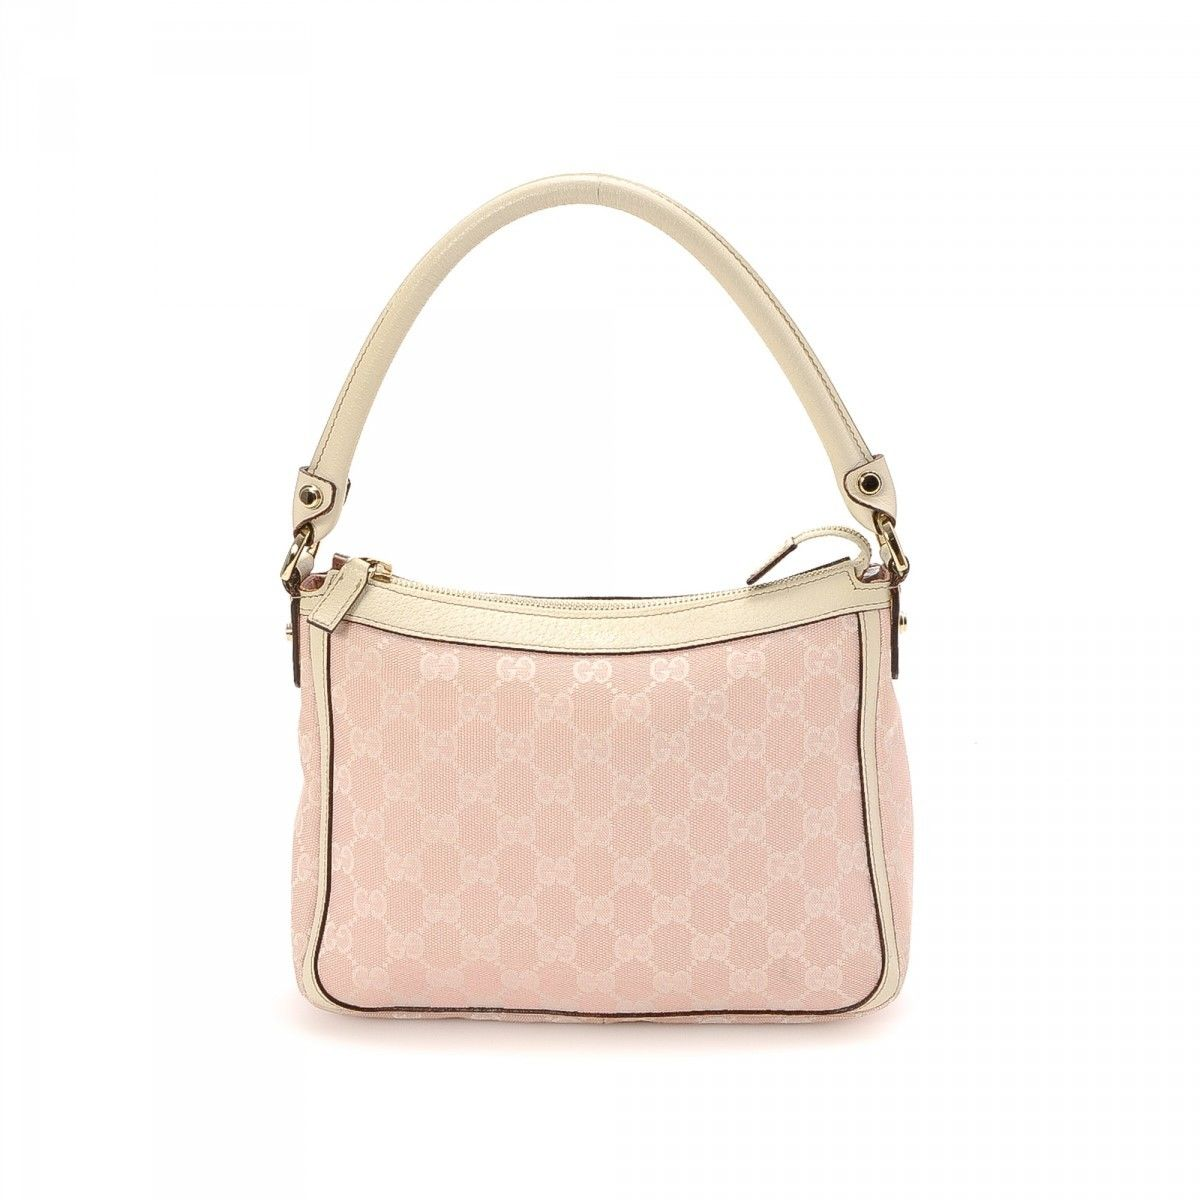 2de6771af6a Gucci GG Canvas Handbag. The authenticity of this vintage Gucci handbag is  guaranteed by LXRandCo. This signature bag was crafted in gg canvas in baby  pink.